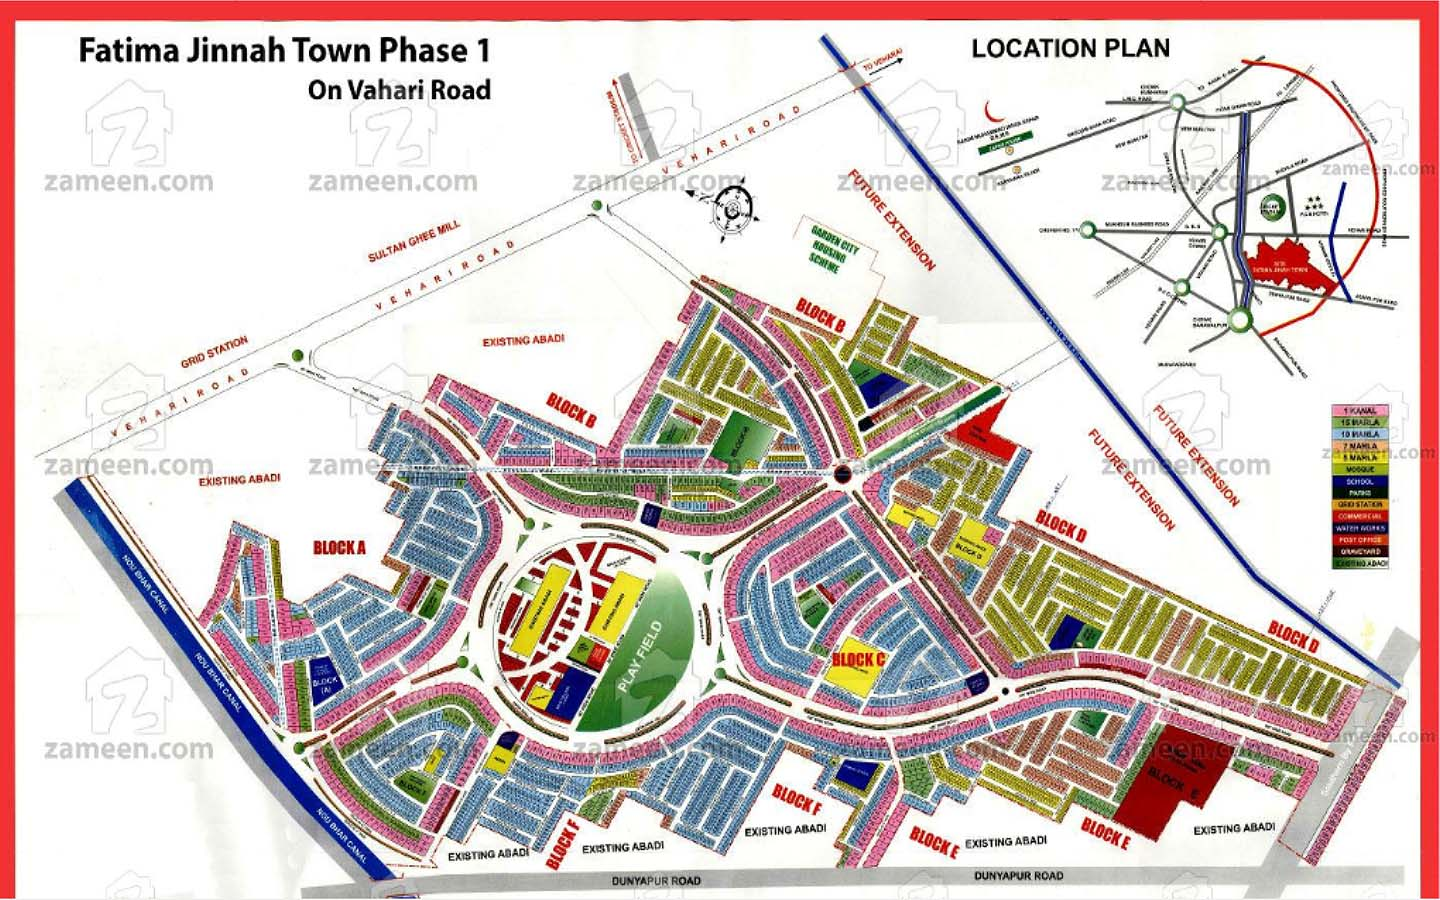 The master plan of Phase 1, Fatima Jinnah Town